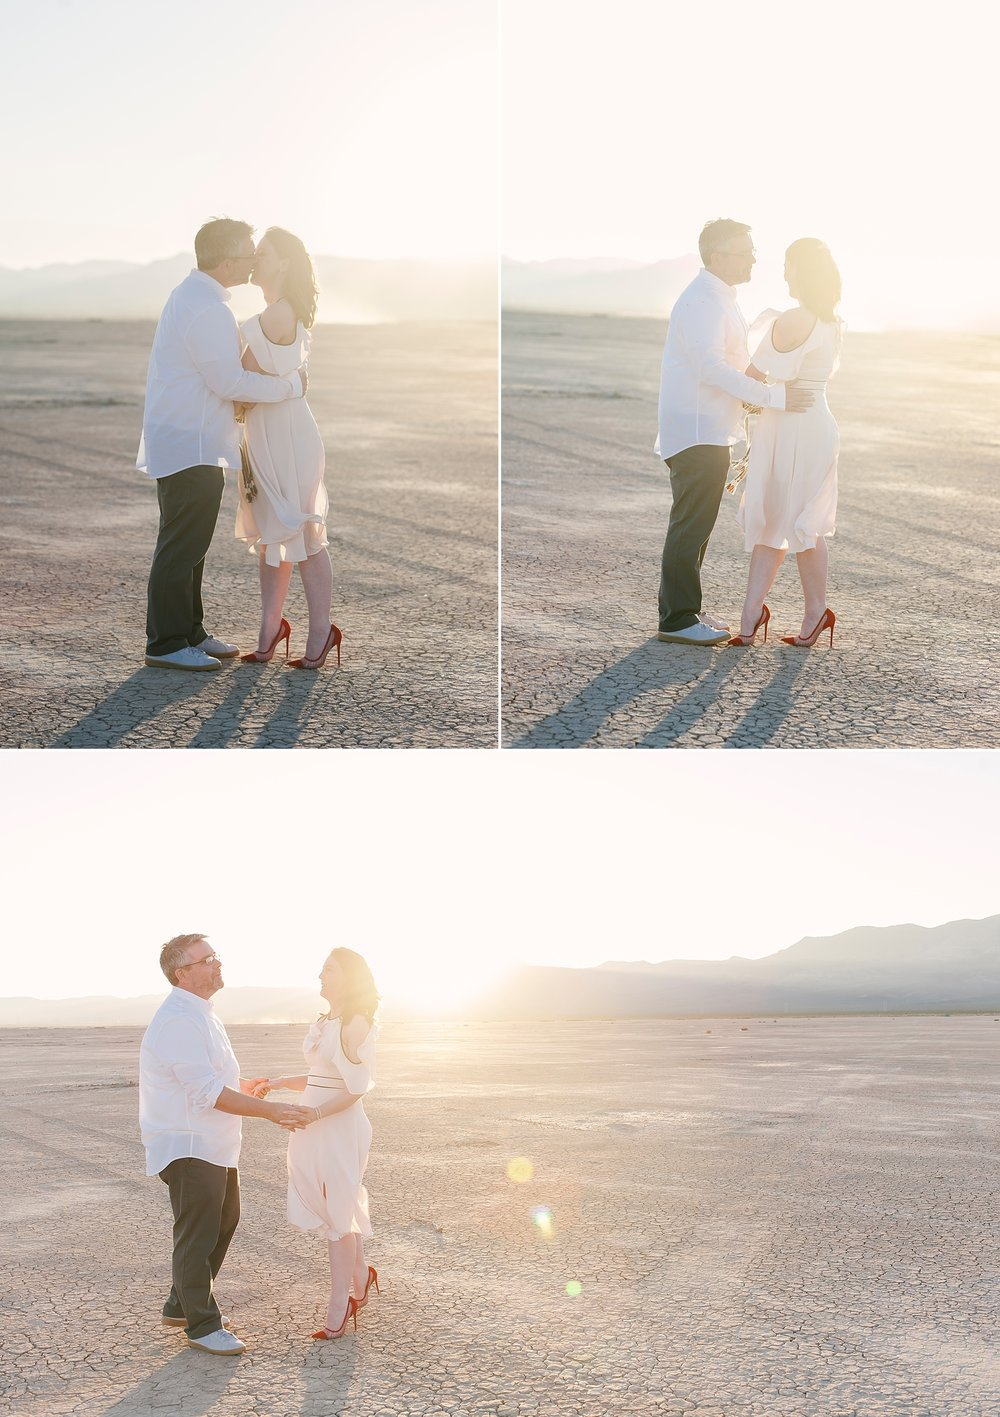 Las_vegas_desert_dry_lake_bed_elopement-4.jpg